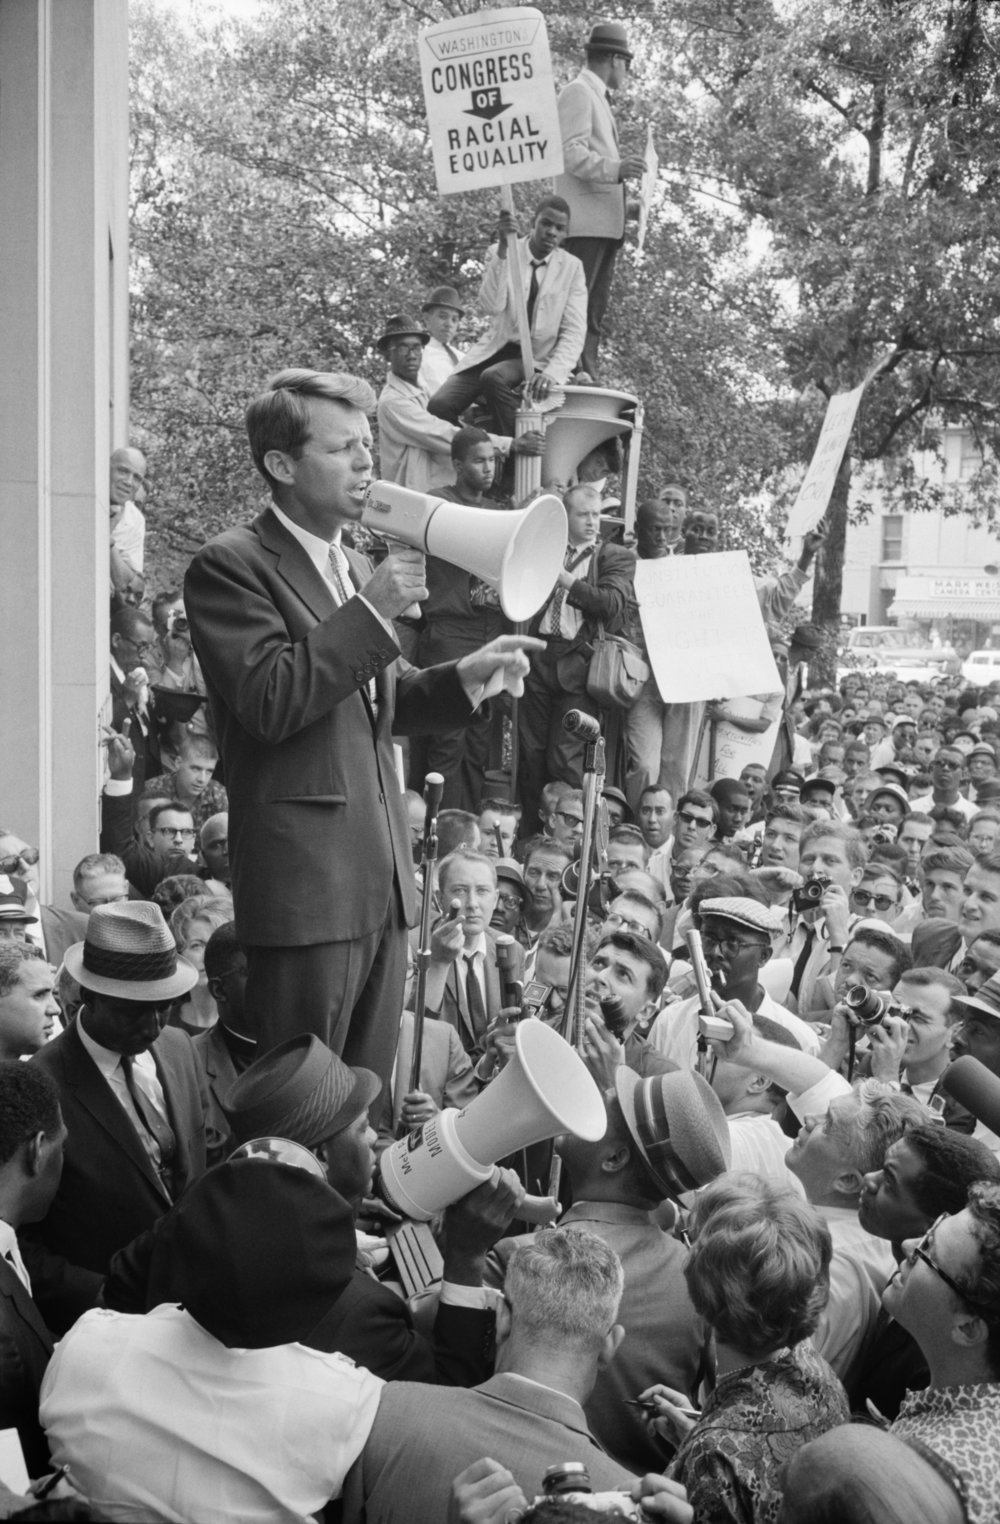 U.S. Attorney General Robert F. Kennedy addressing civil rights protestors outside the Justice Department on June 14, 1963. Courtesy the Library of Congress.